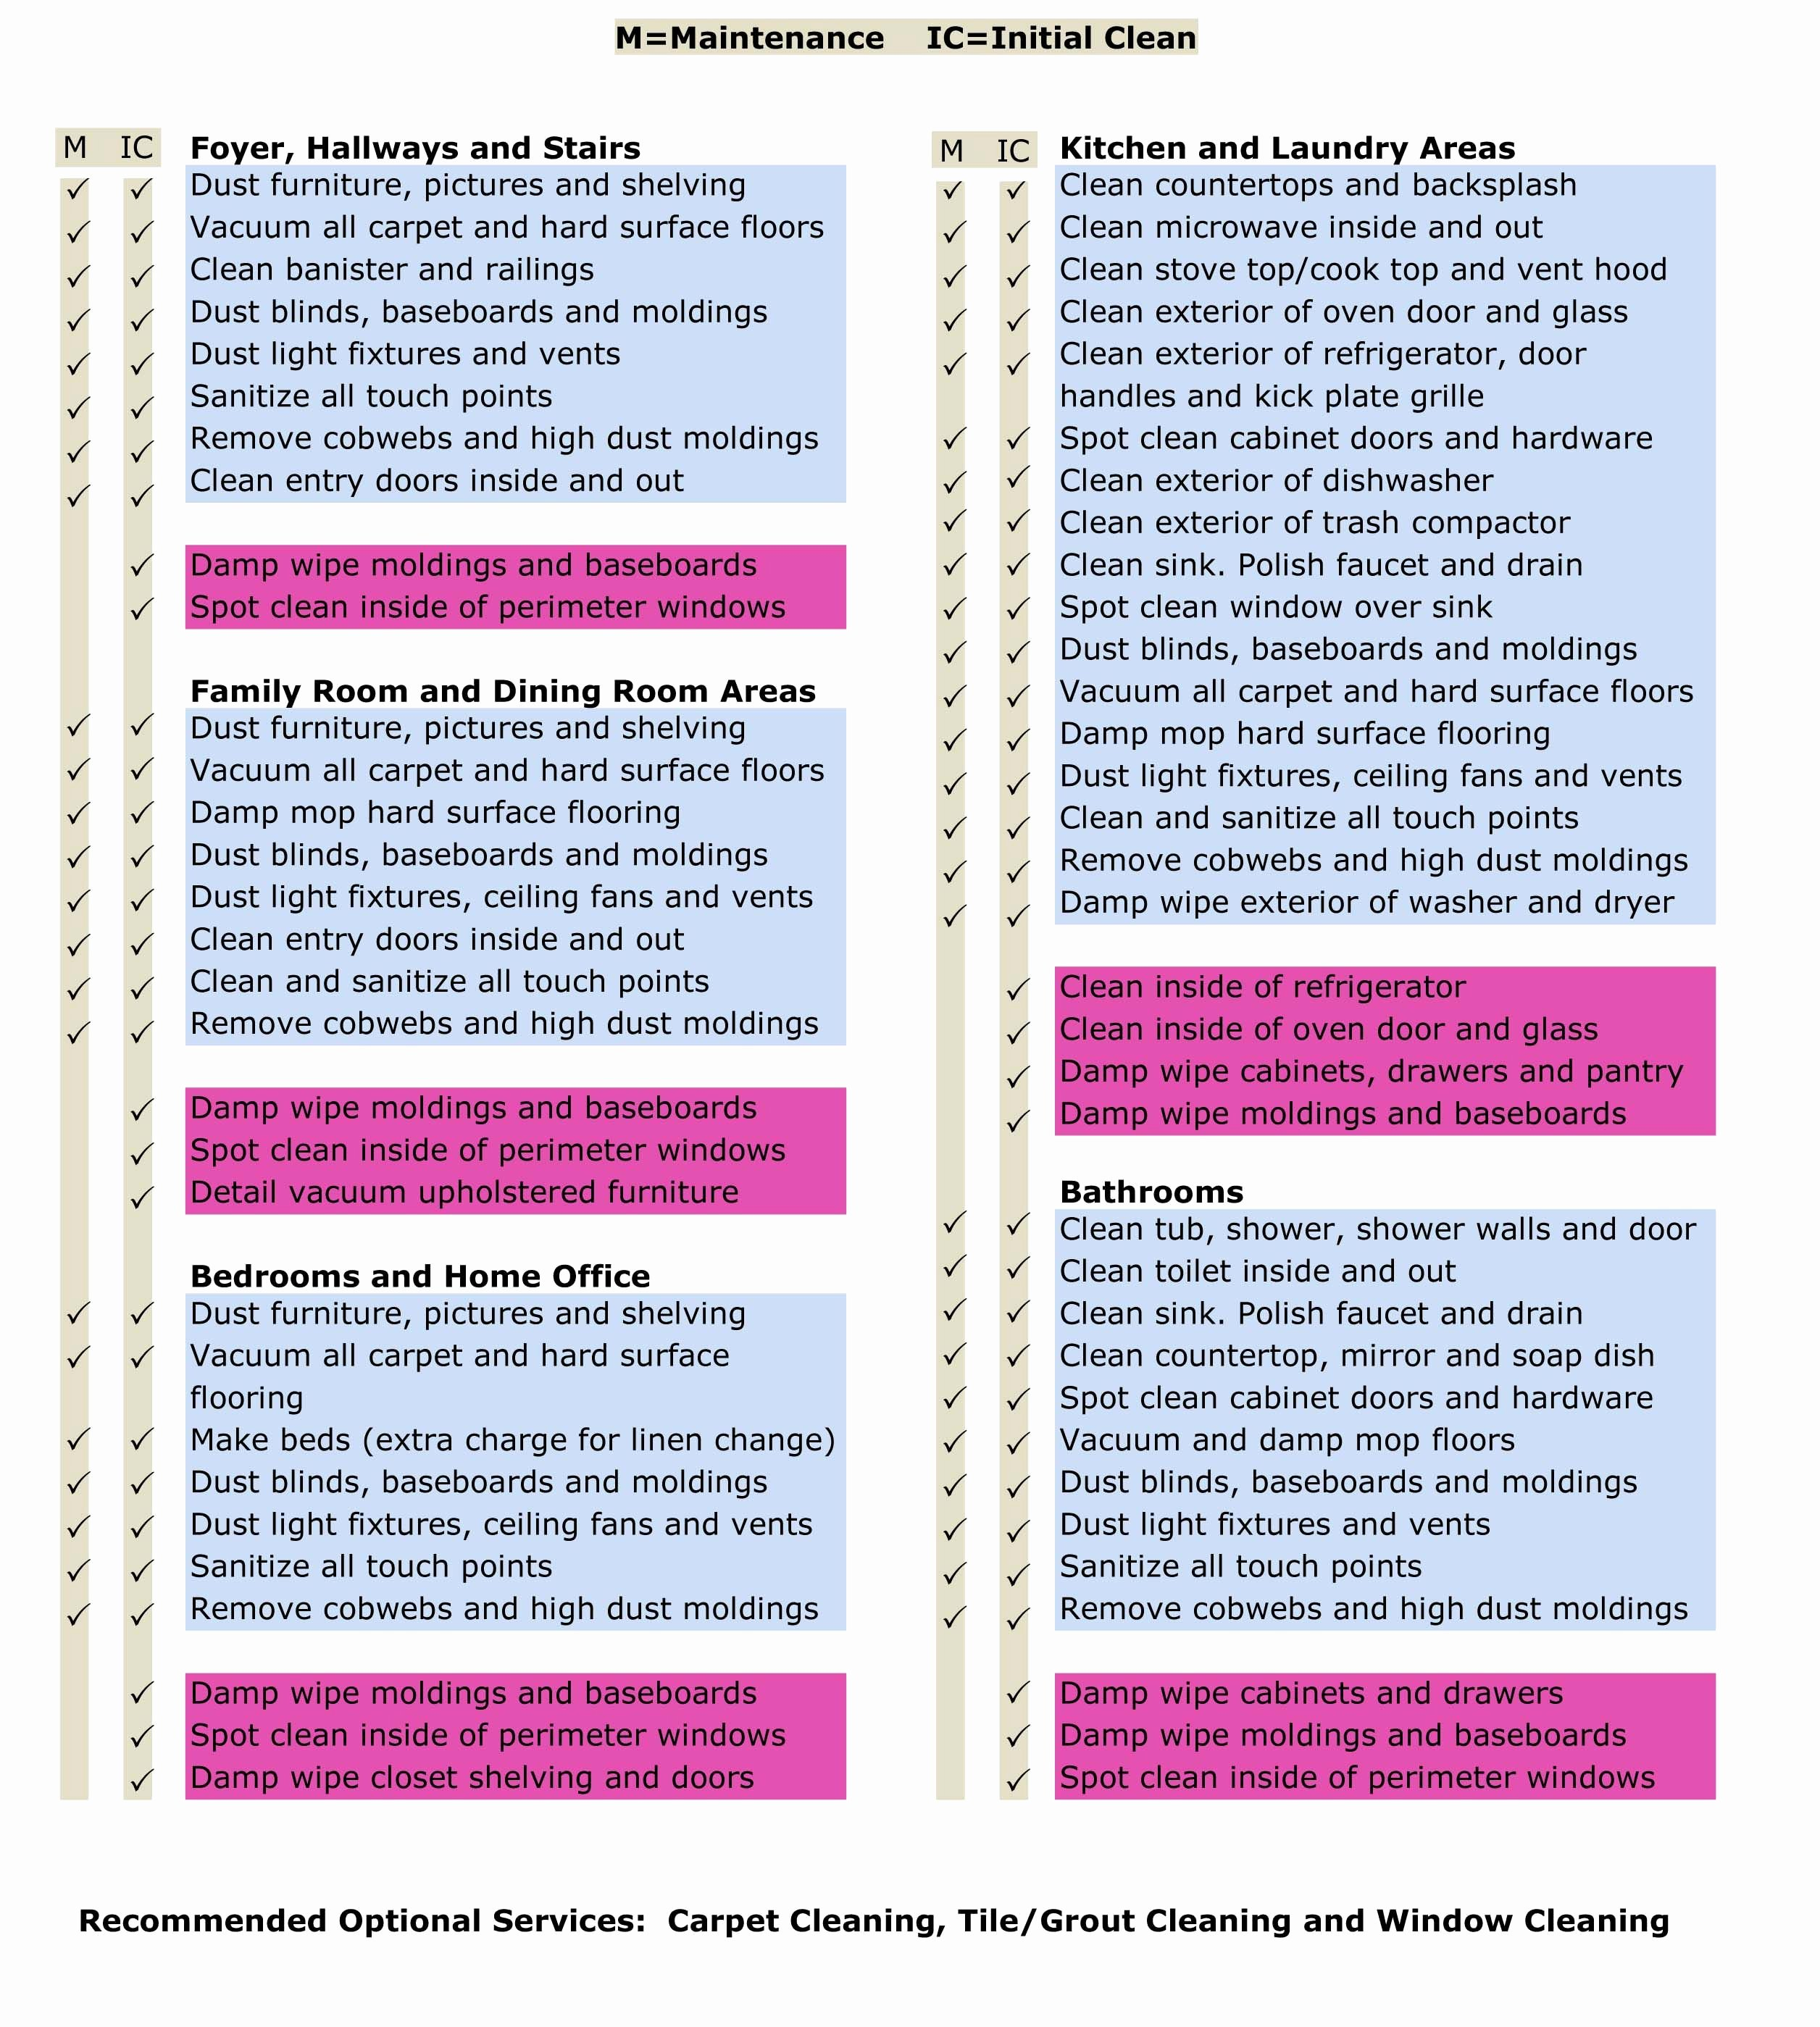 Professional House Cleaning Checklist Template Elegant Free Templates for House Cleaning Checklist